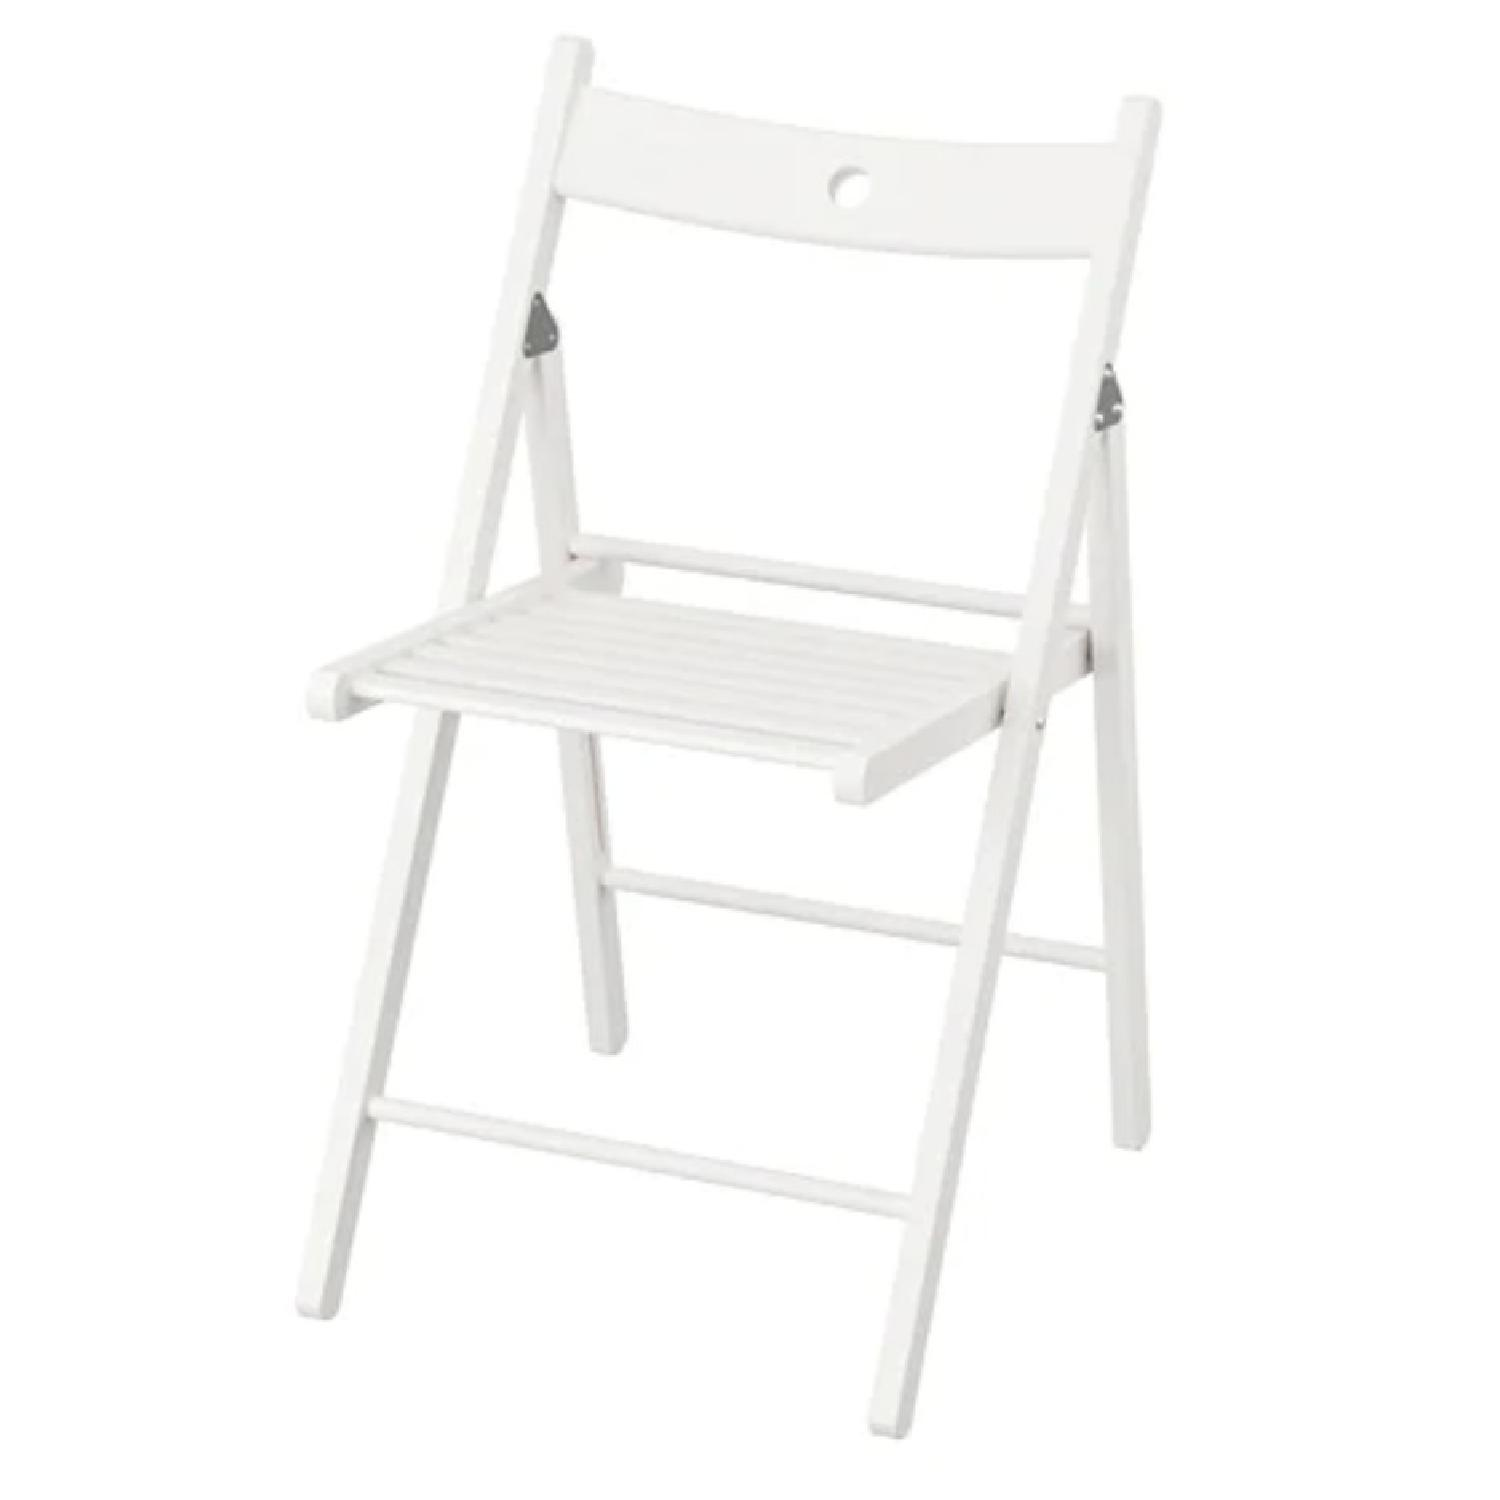 Ikea Terje White Folding Chairs - image-0